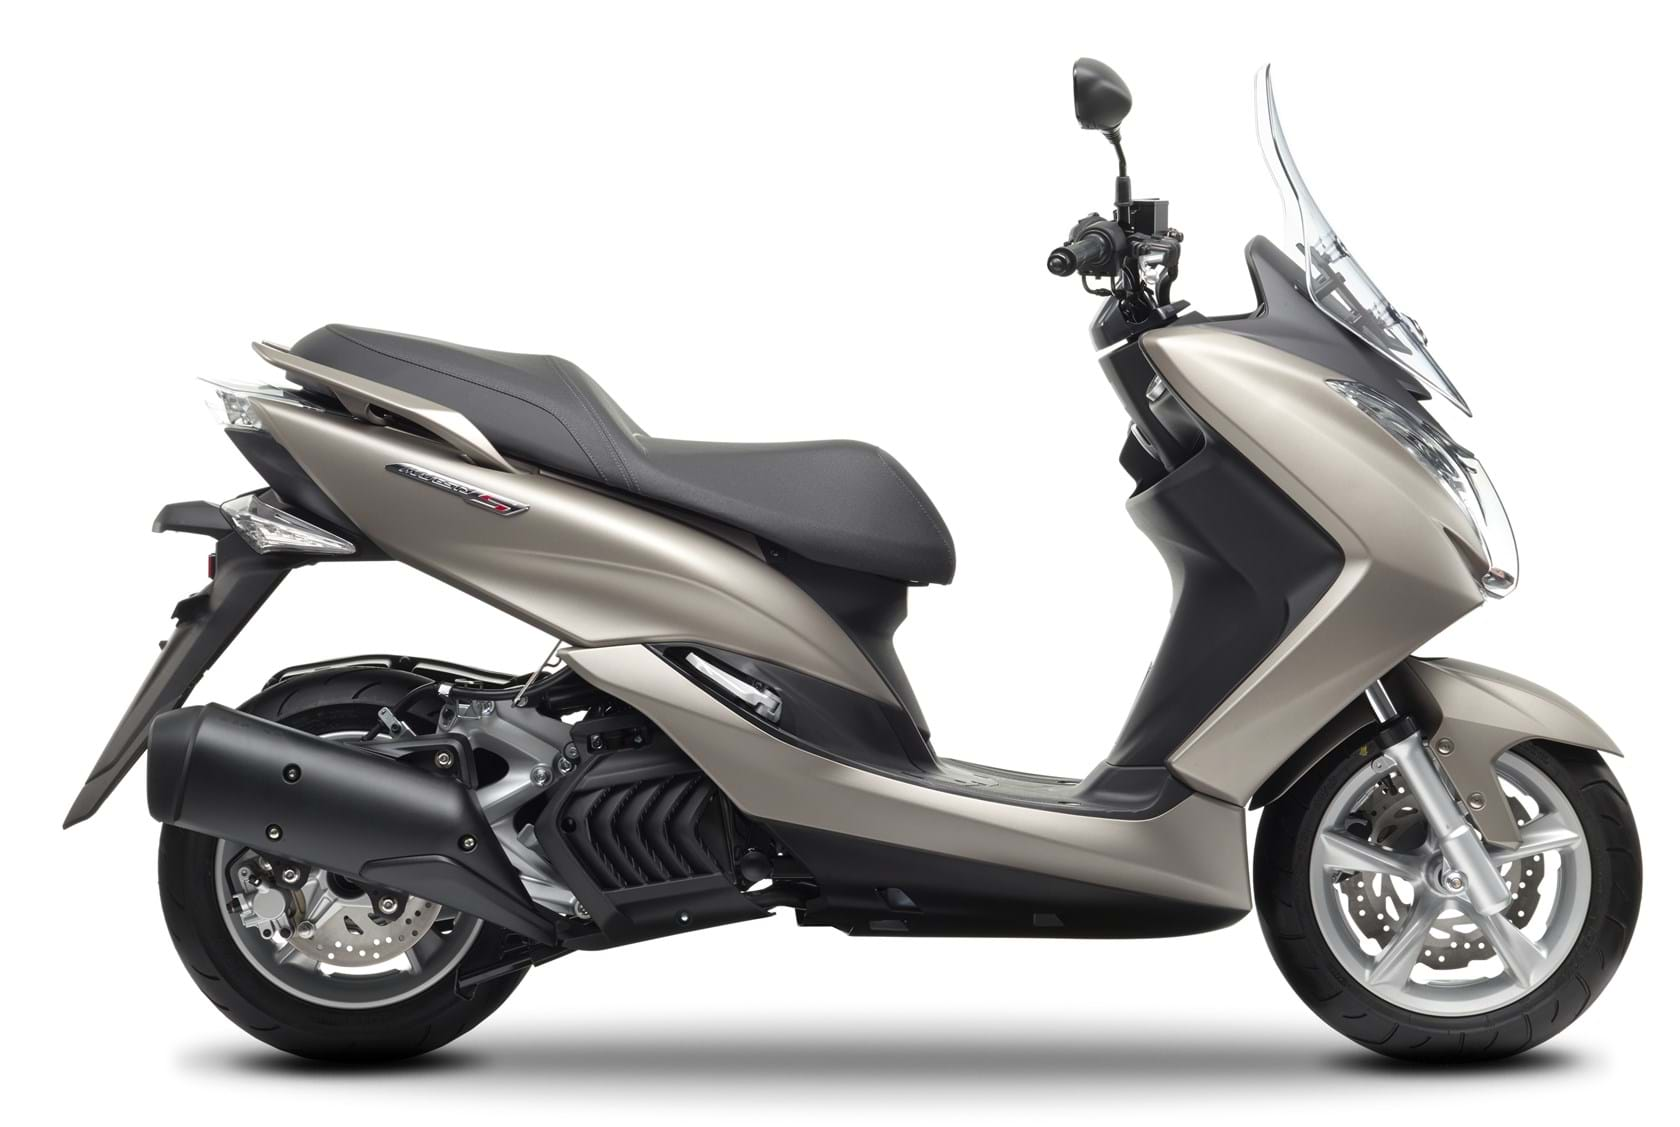 Yamaha Majesty S • For Sale • Price Guide • The Bike Market